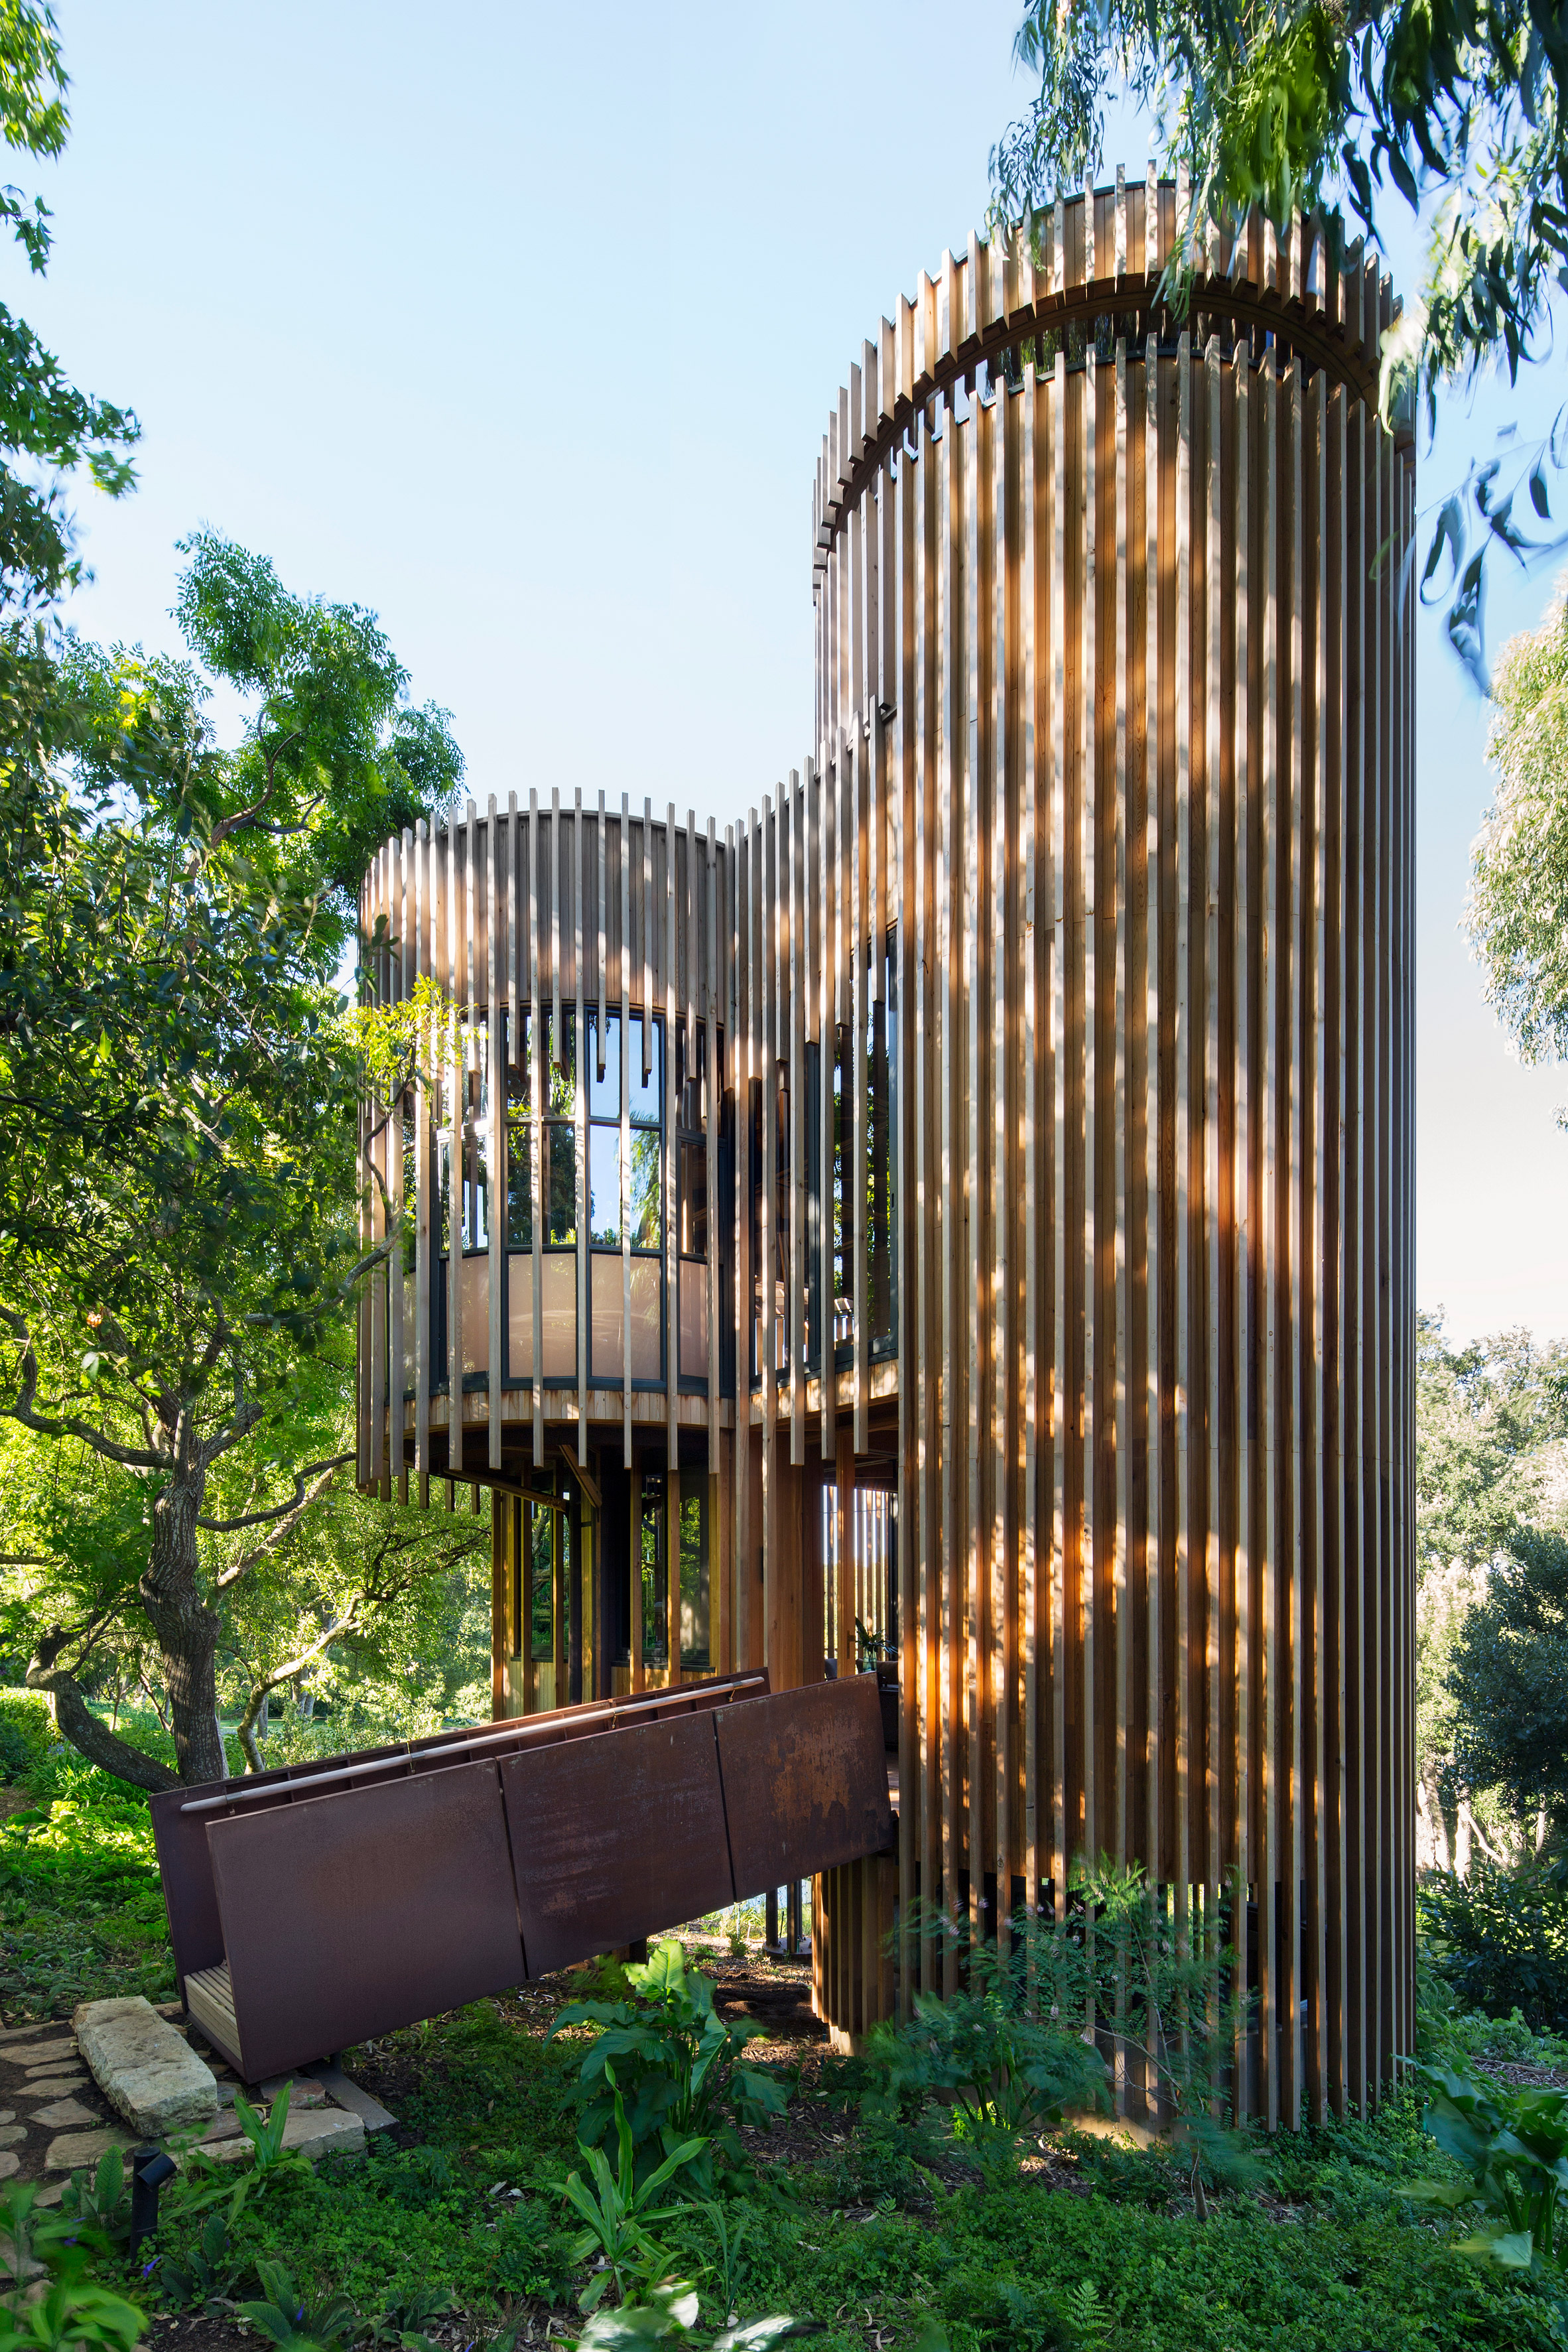 paarman-tree-house-by-mv-architecture-residential_dezeen_2364_col_11.jpg